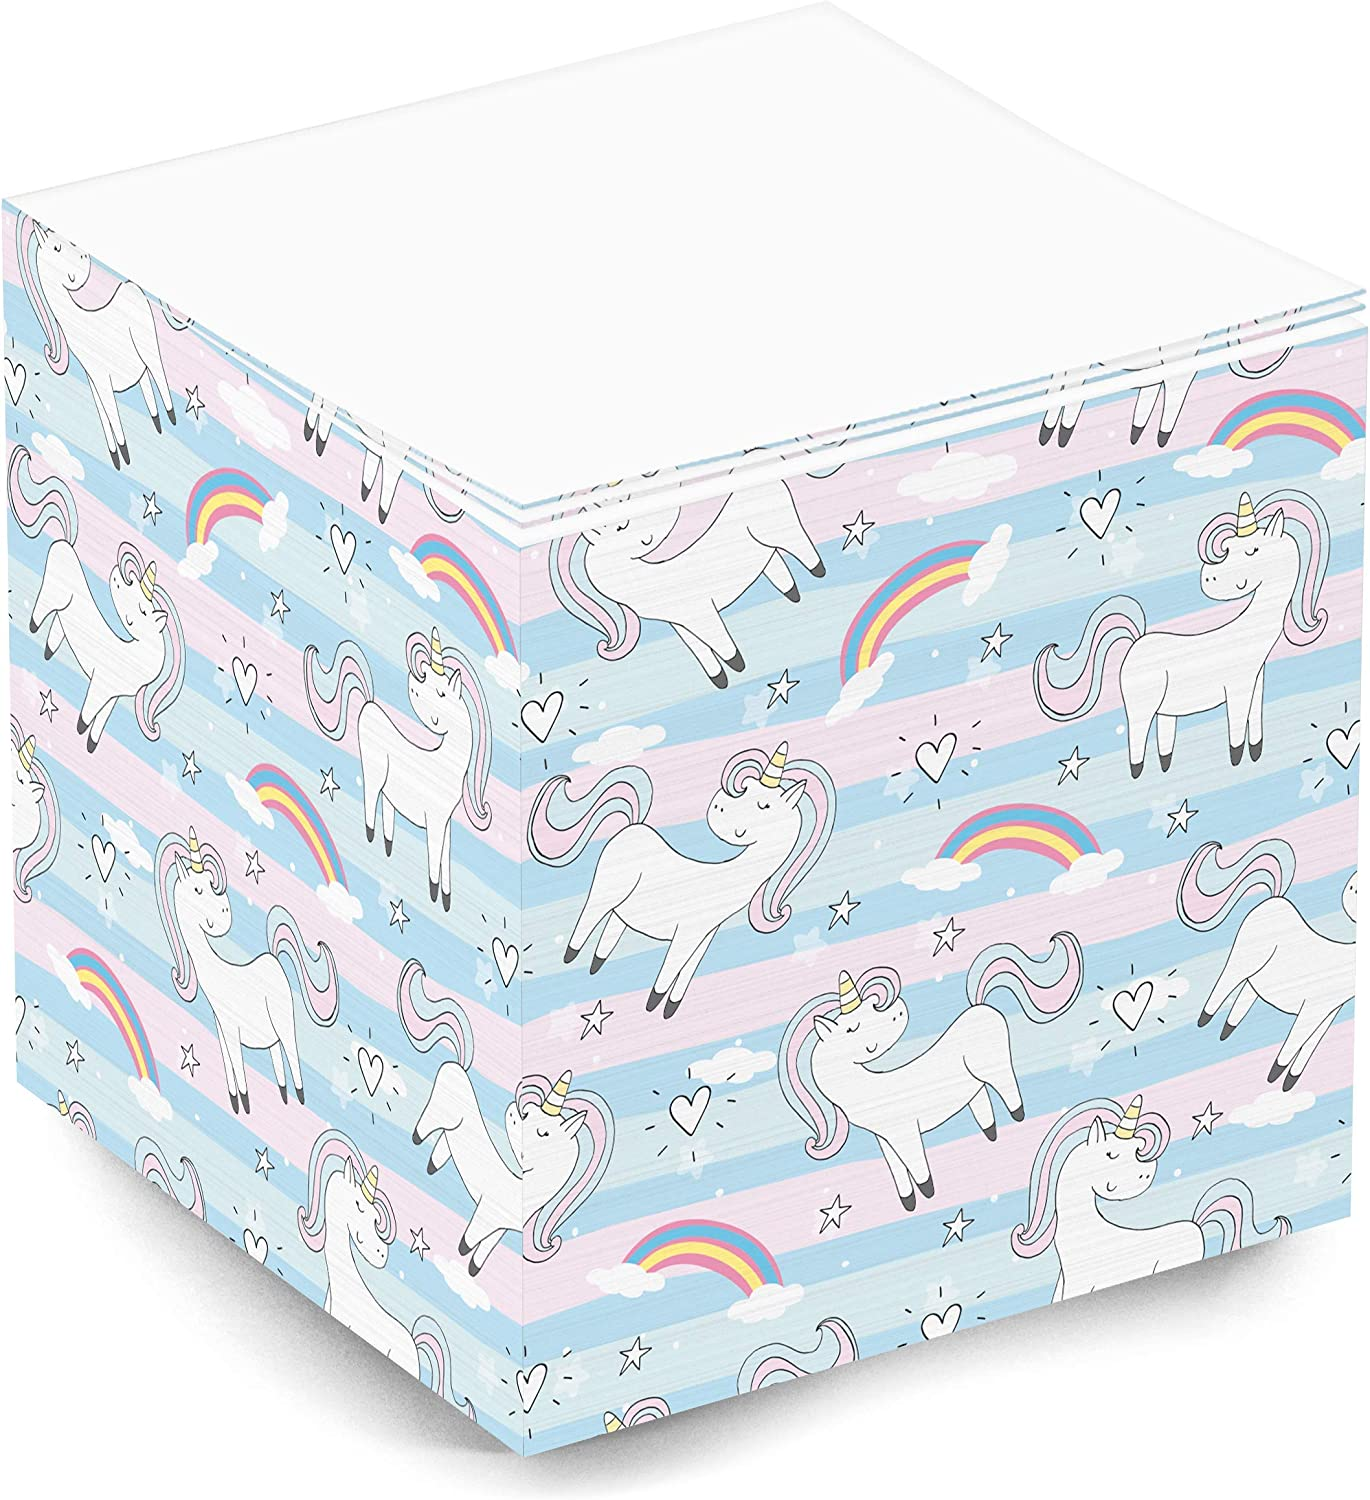 500 Sheet 3.5x3.5x3.5 Inch Non-Sticky Note Cube for School Supplies and Office Supplies Unicorn Non-Sticky Cute and Trendy Blank Note Memo Cube for Teen Girls and Women